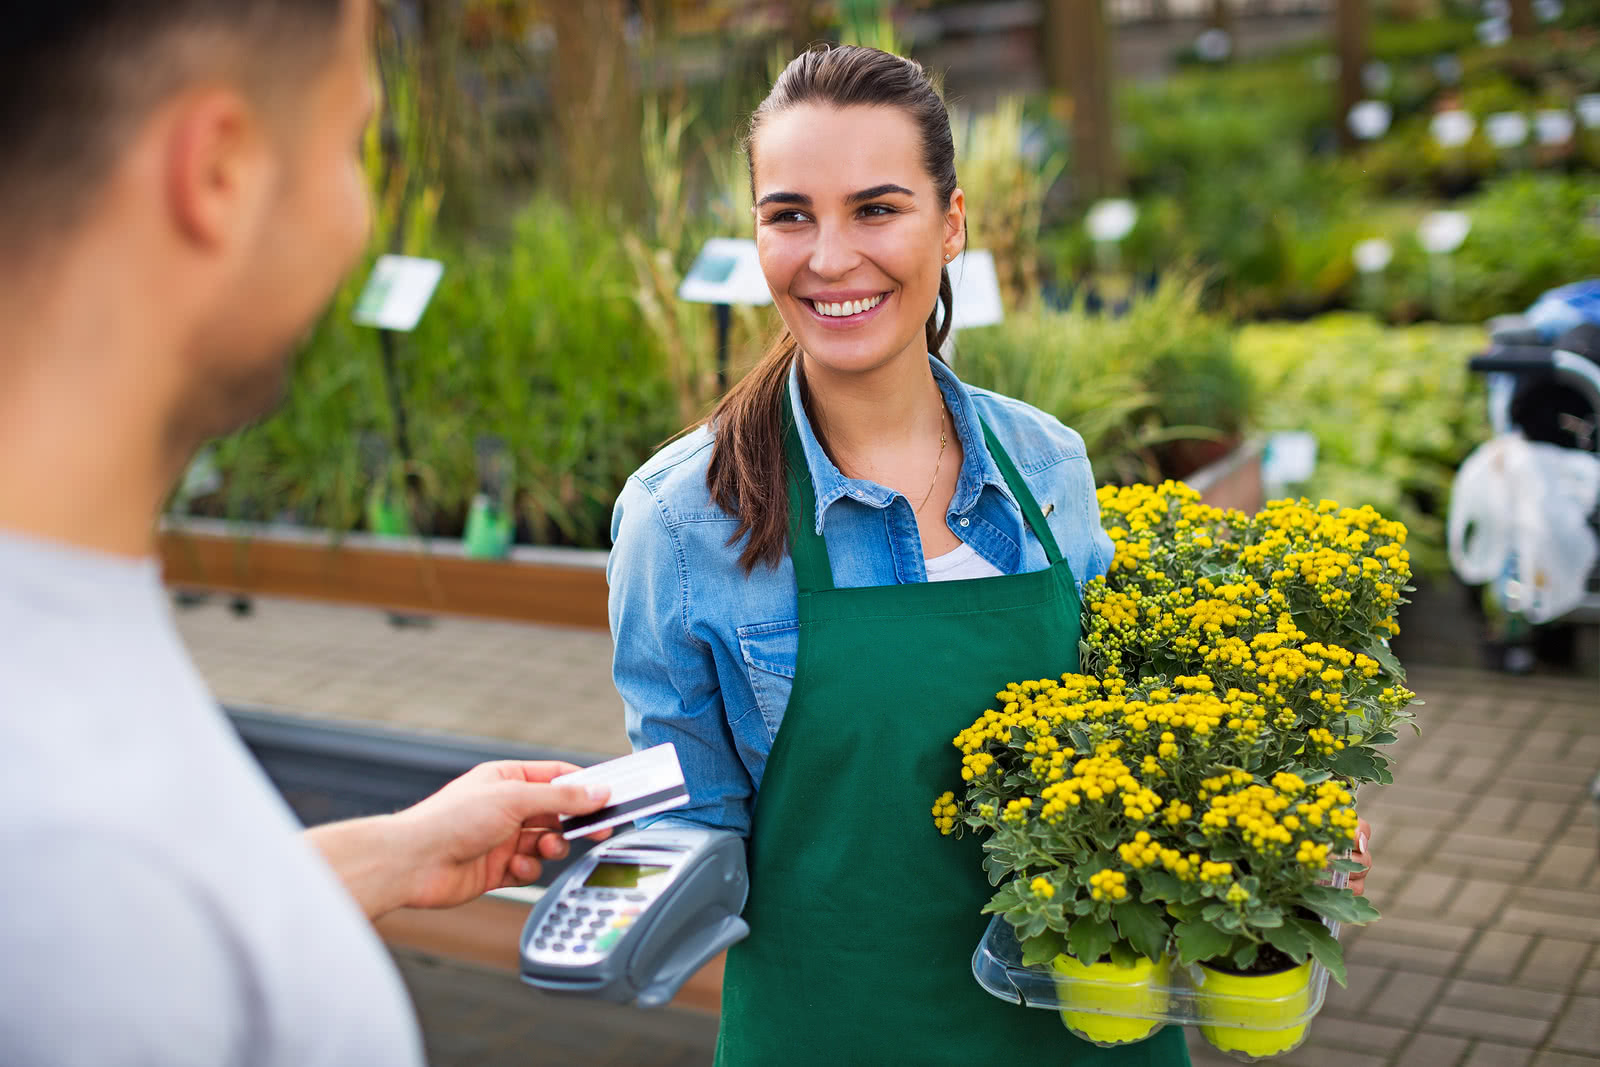 A landscaper buys inventory at a plant nursery with a credit card